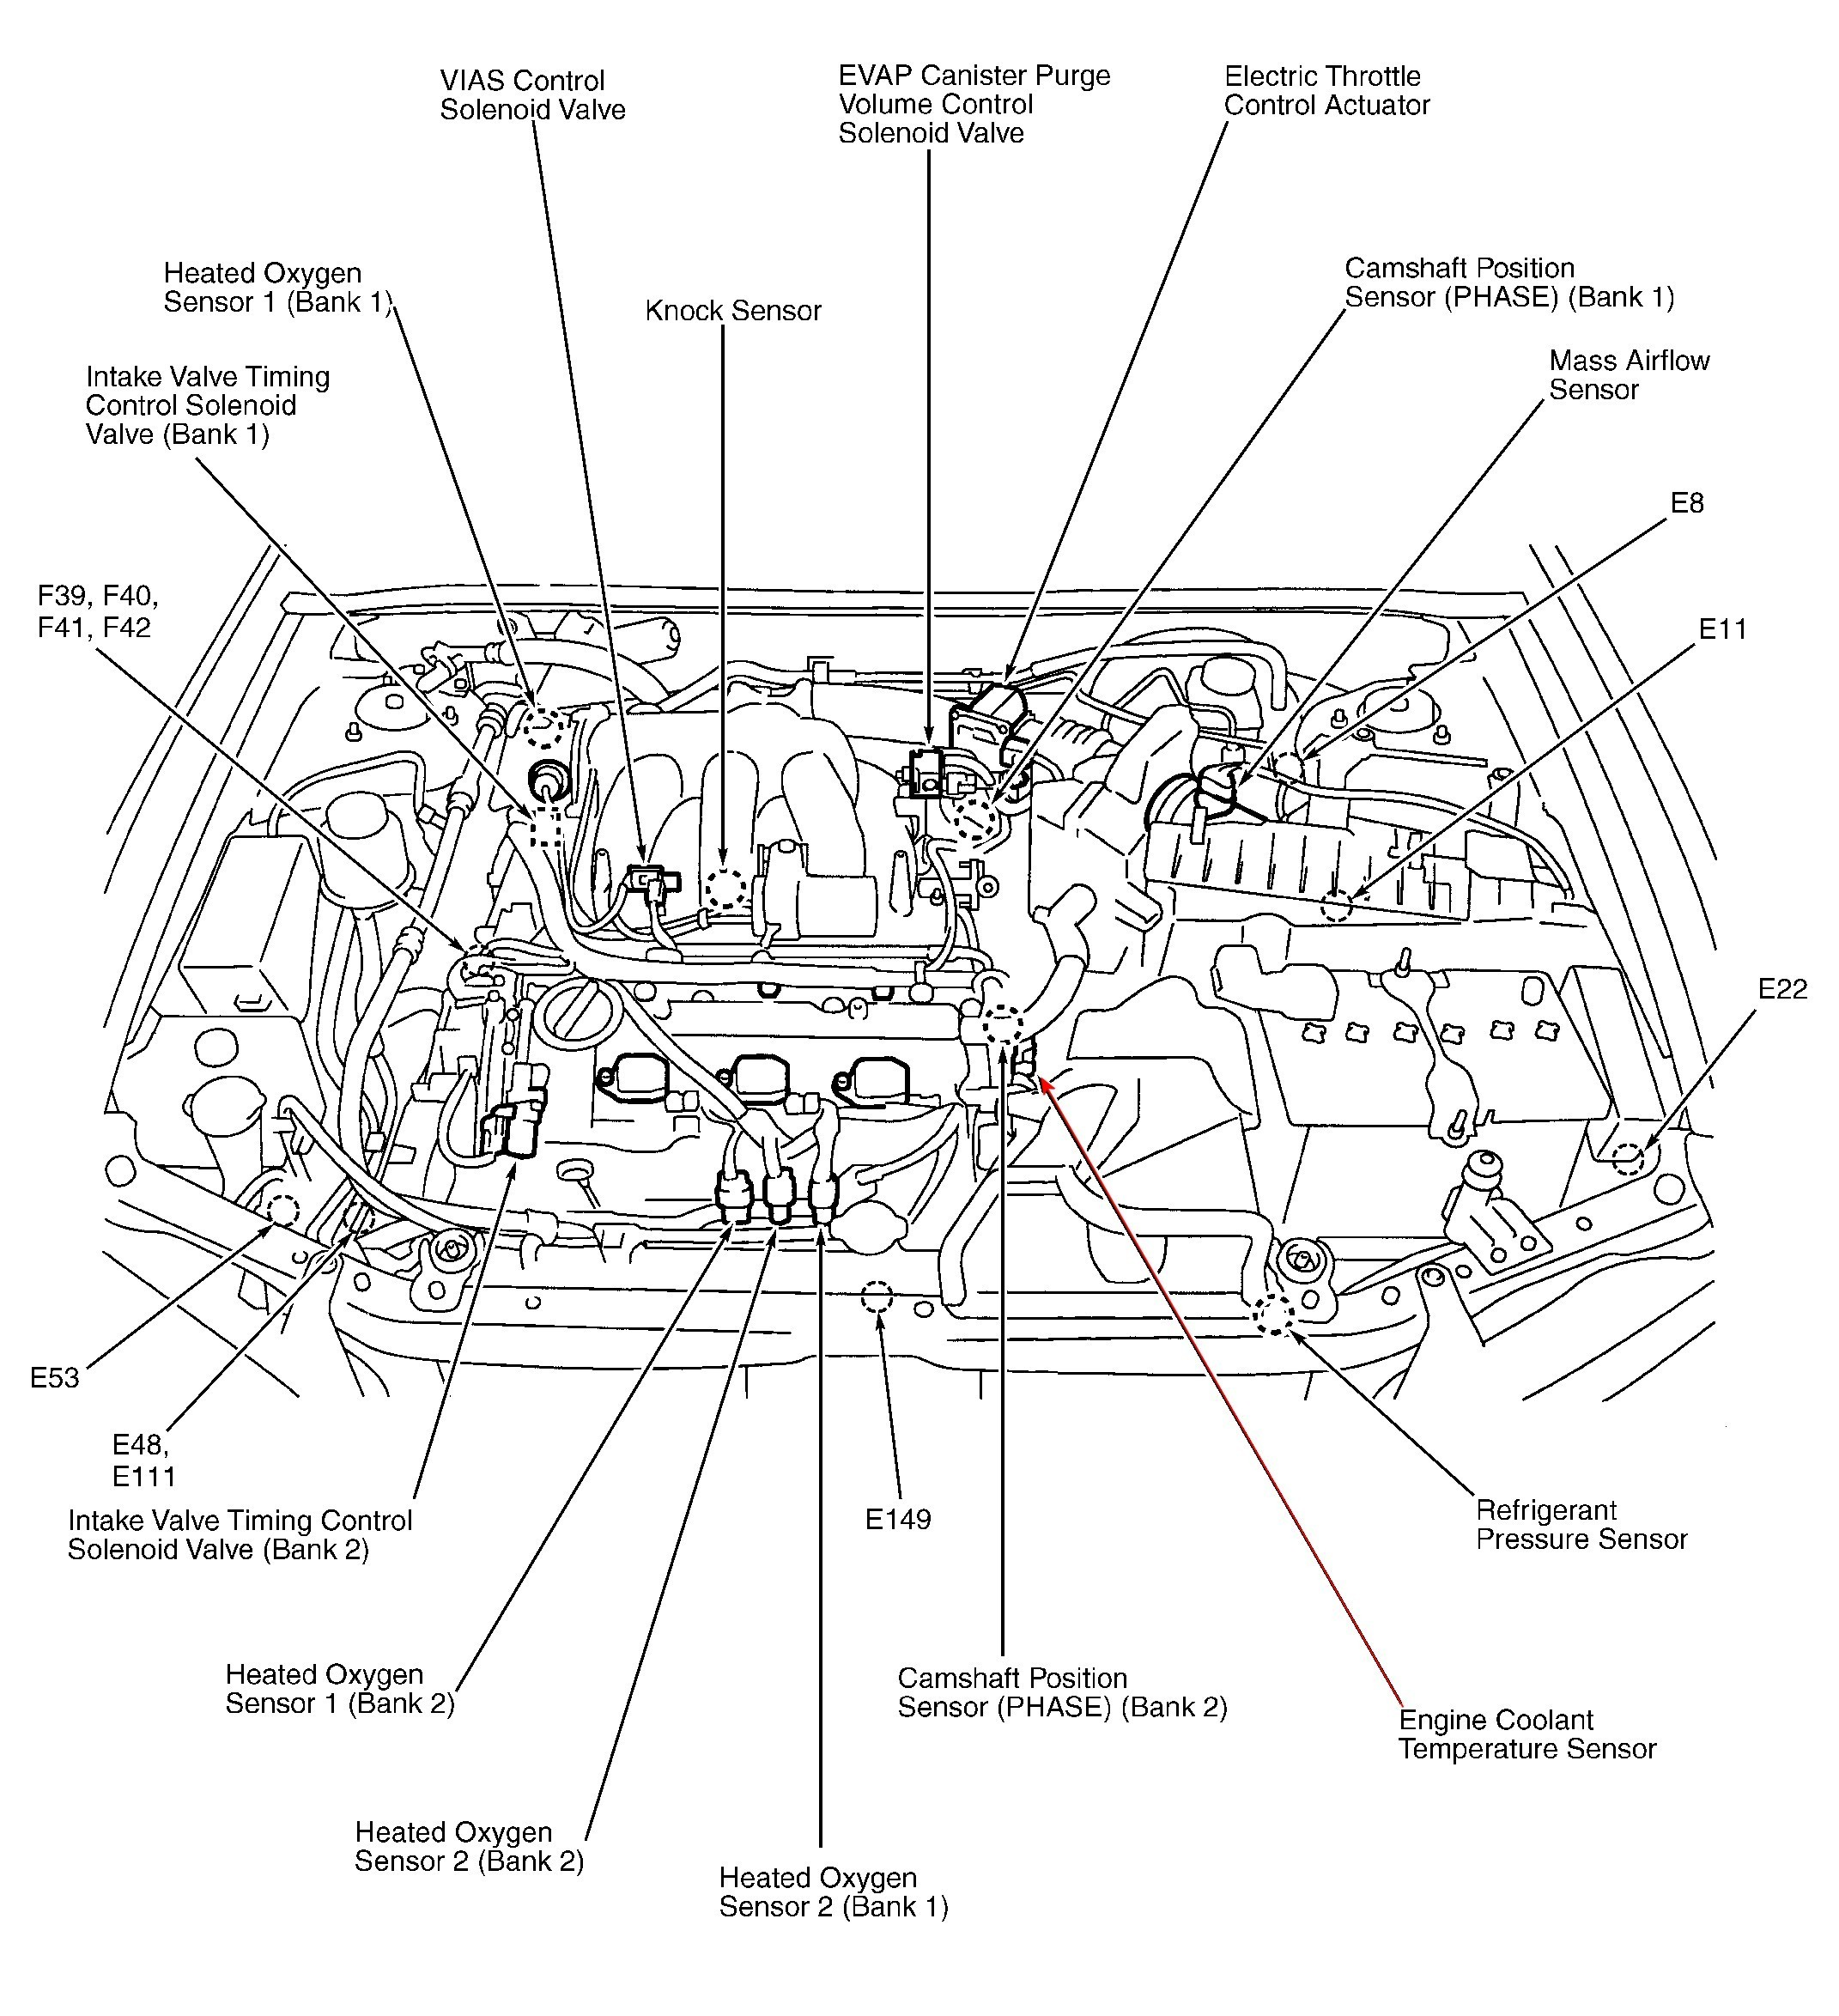 2008 Acura Mdx Engine Diagram Wiring Library 2005 Fuse Box Location Parts Newmotorku Co At Galaxydownloads